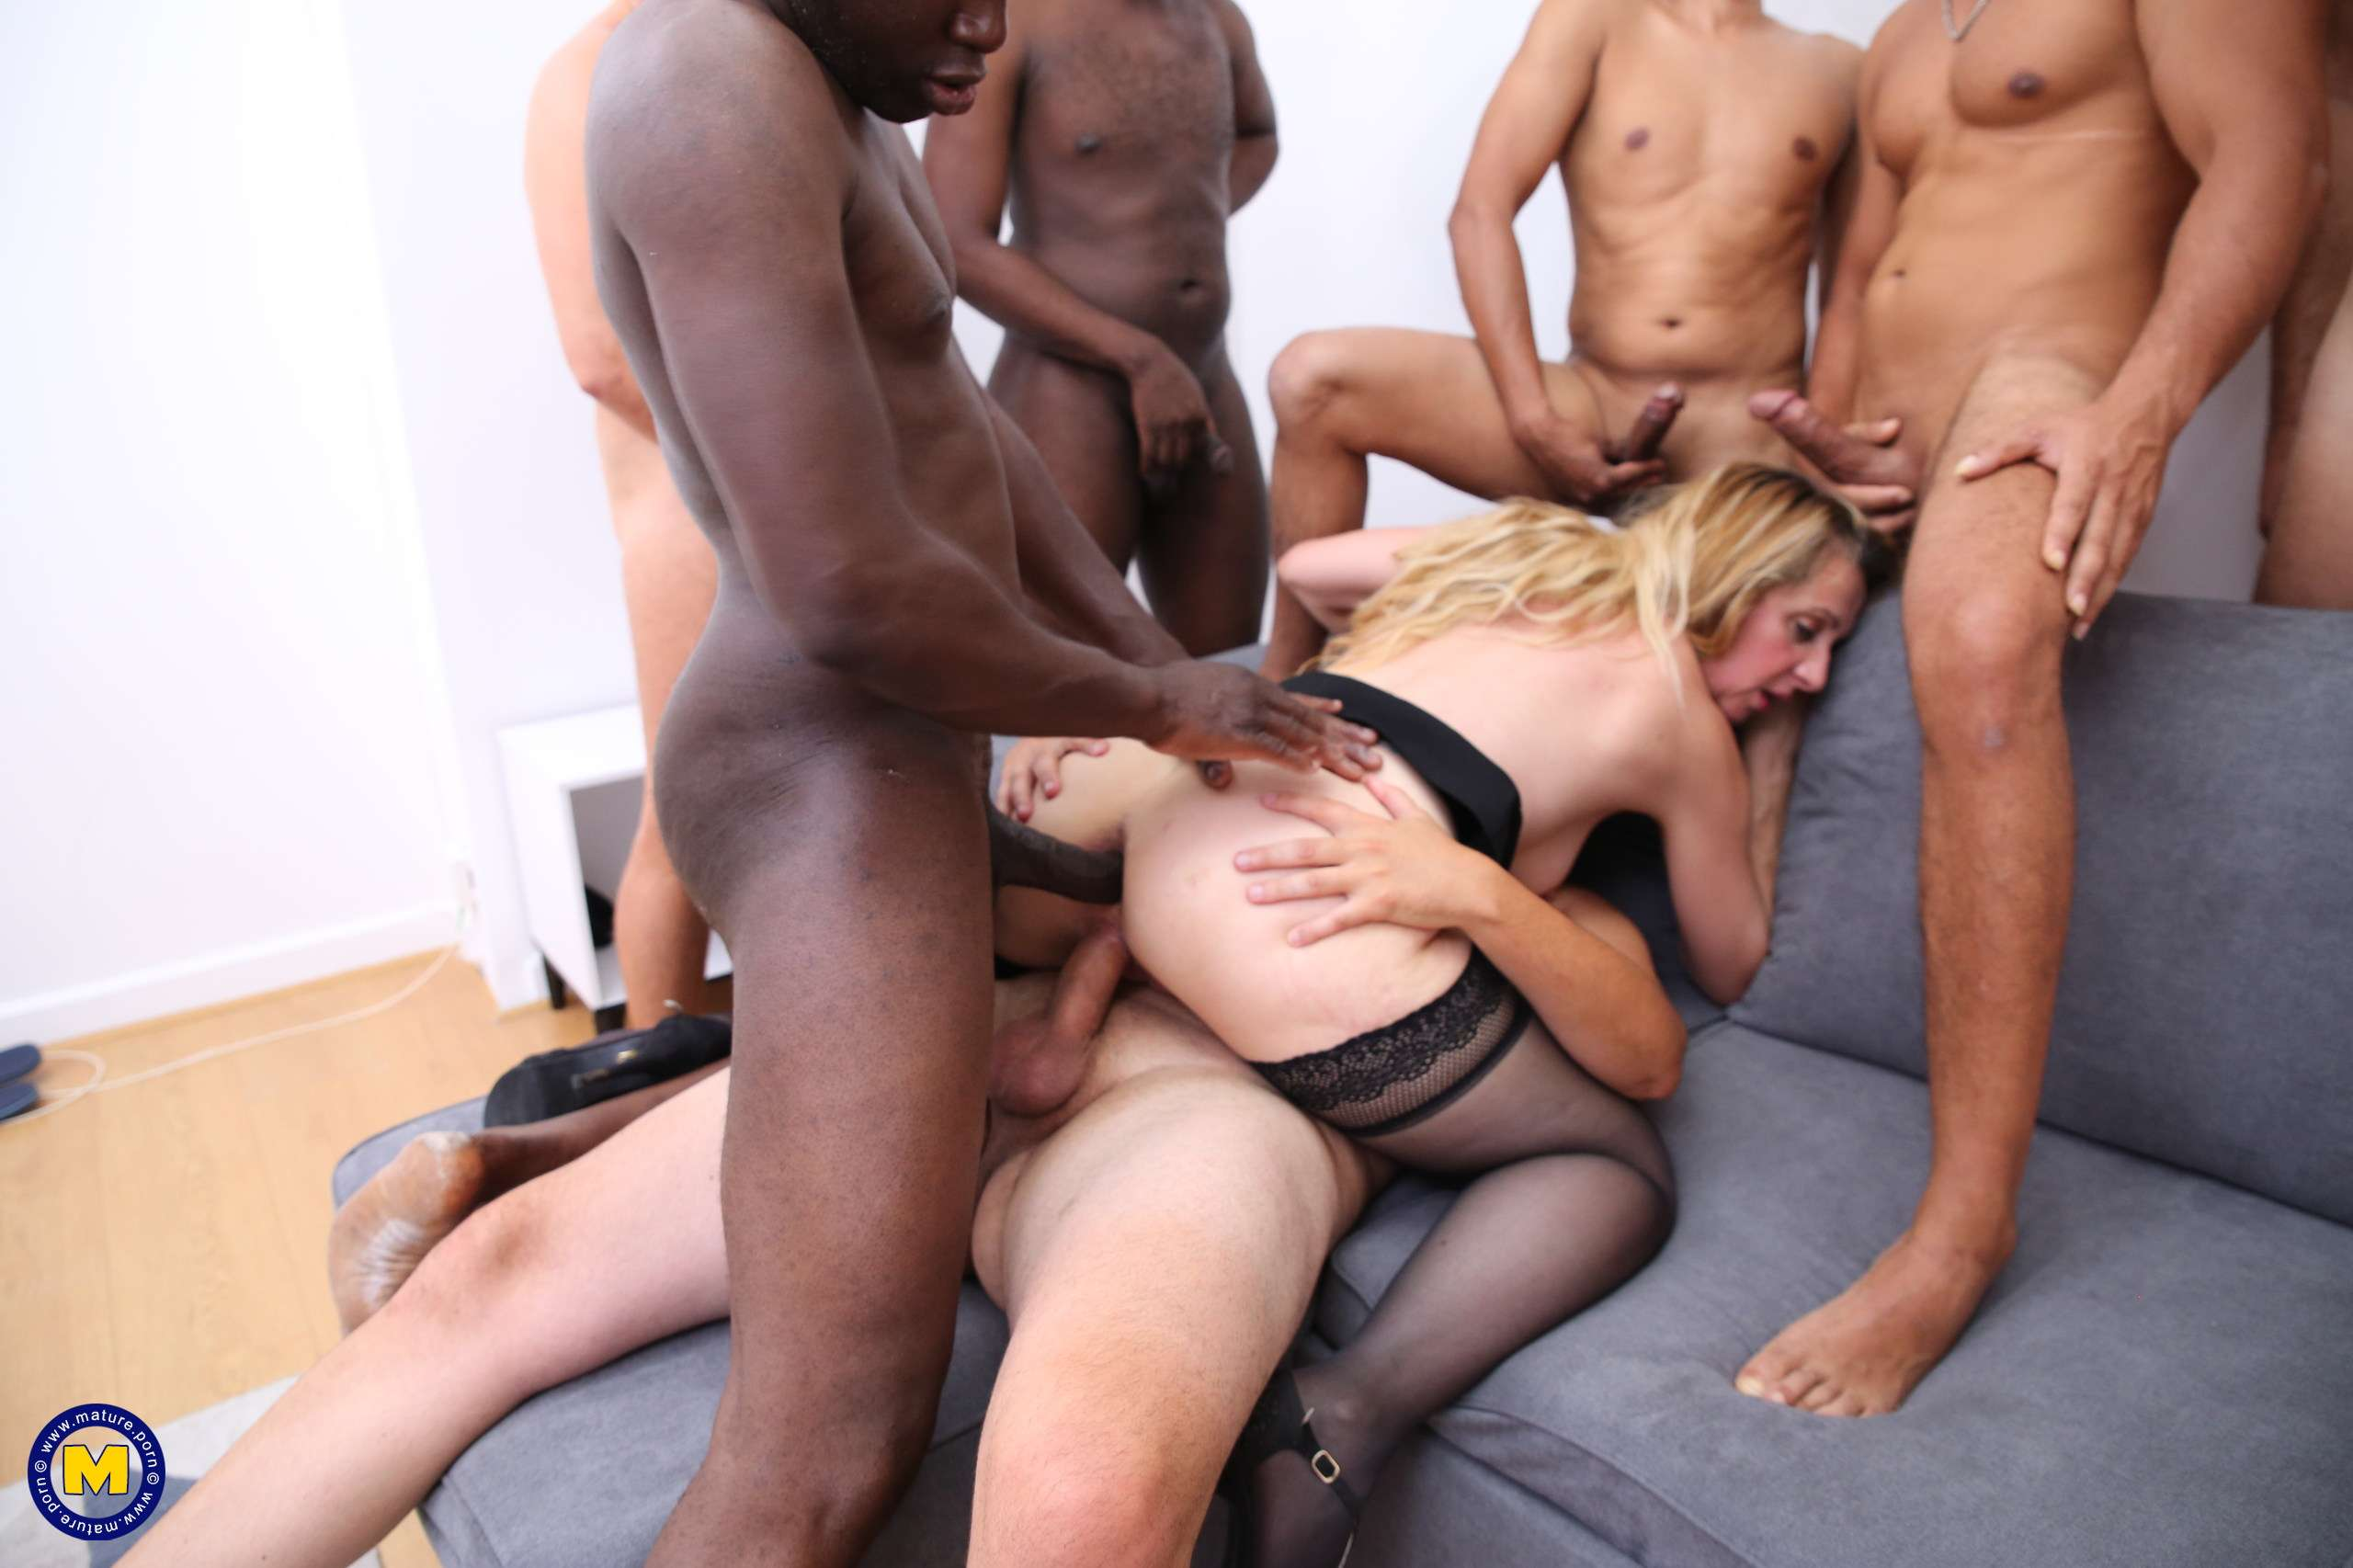 Naughty mature nympho gets all holes filled in this gang bang